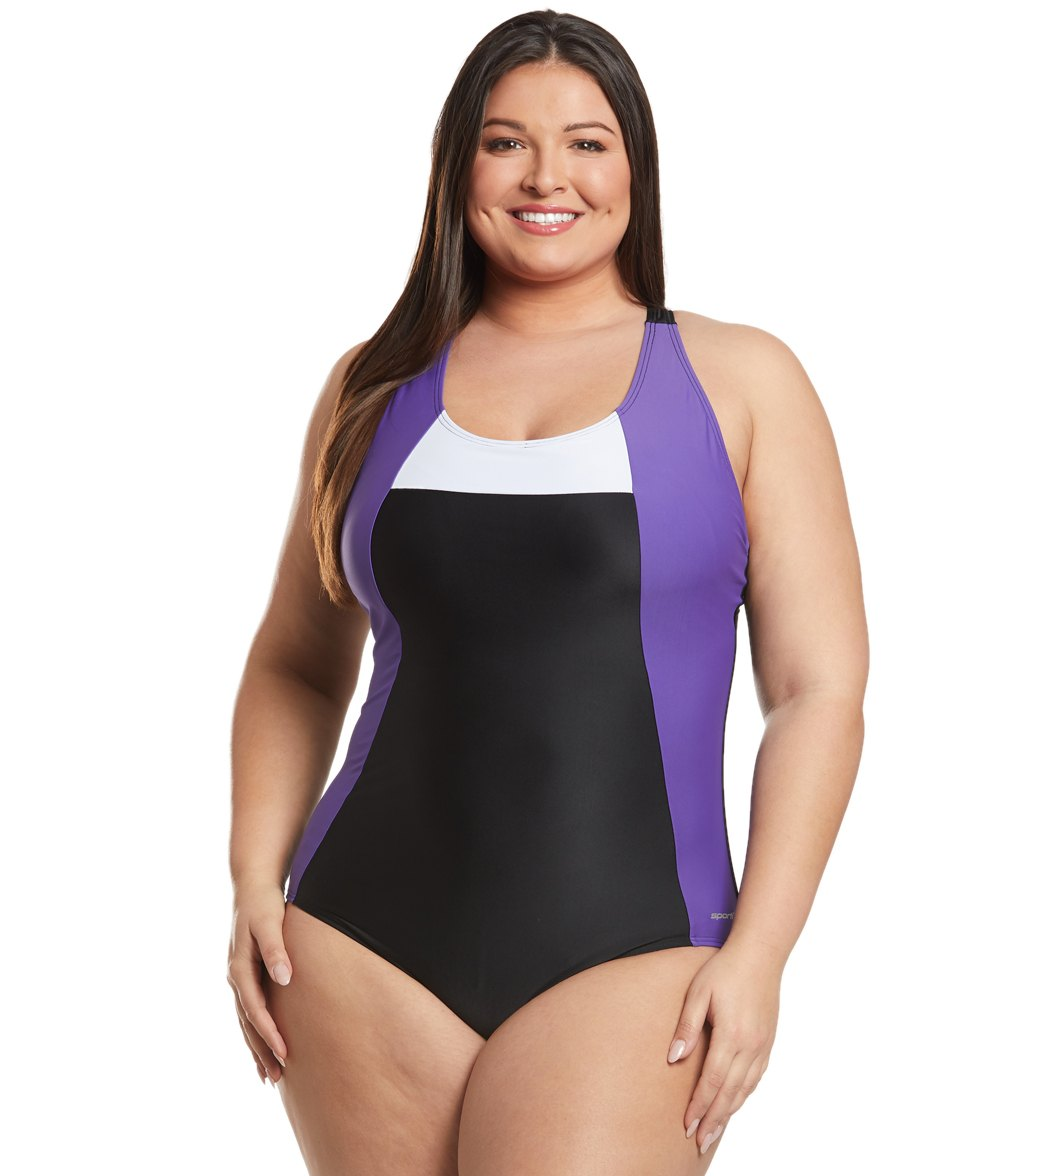 96625a25182eb Sporti Plus Size Moderate Colorblock One Piece Swimsuit at SwimOutlet.com